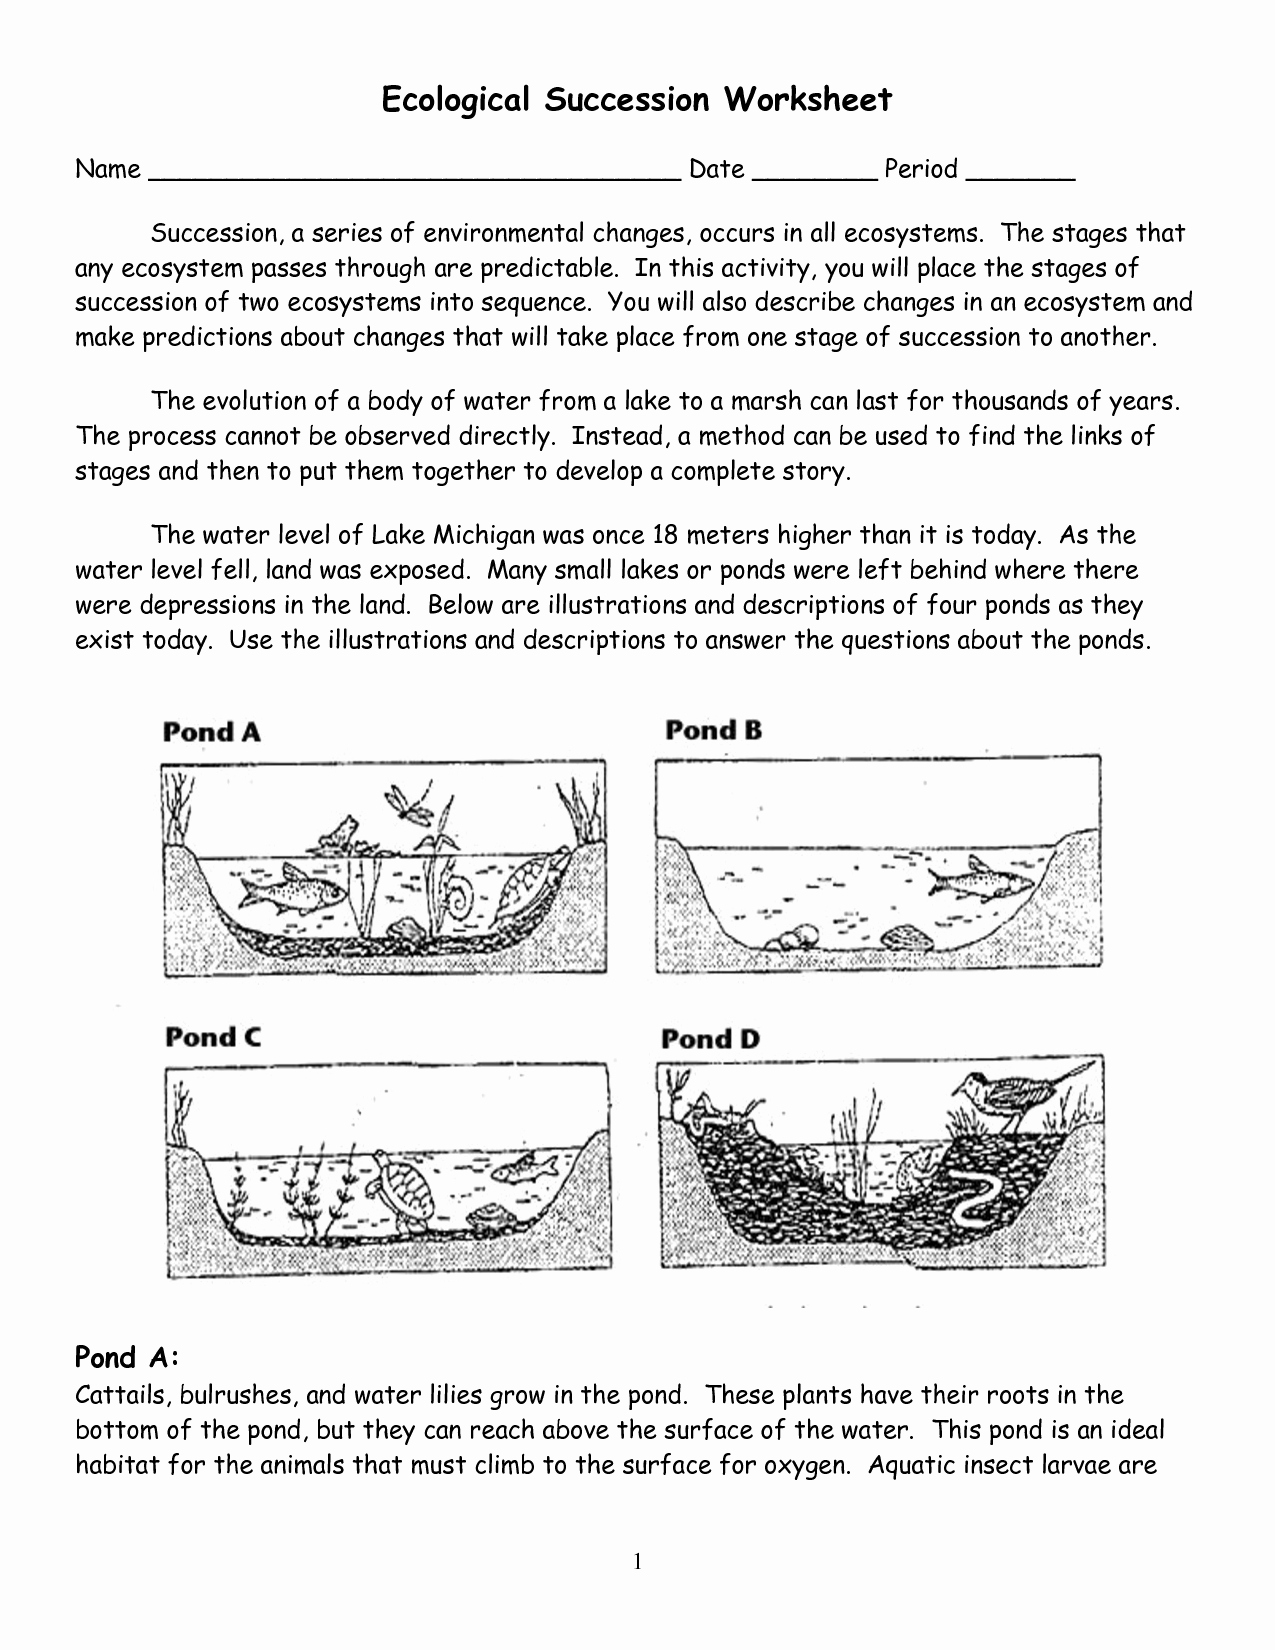 Ecological Pyramids Worksheet Answers Fresh 10 Best Of Ecological Succession Worksheet Answer